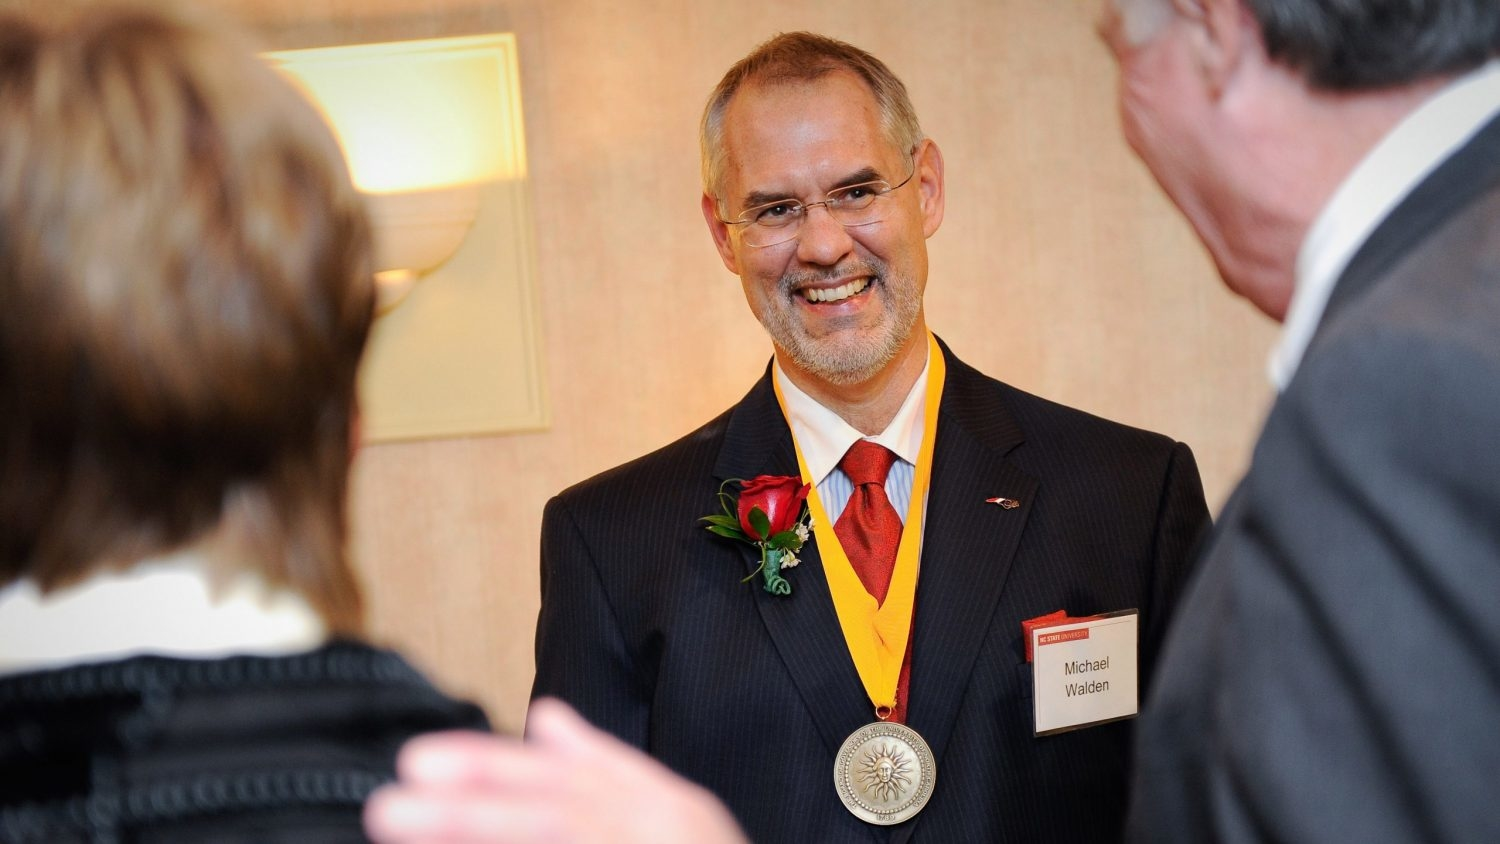 Man with medal around his neck speaking with two people